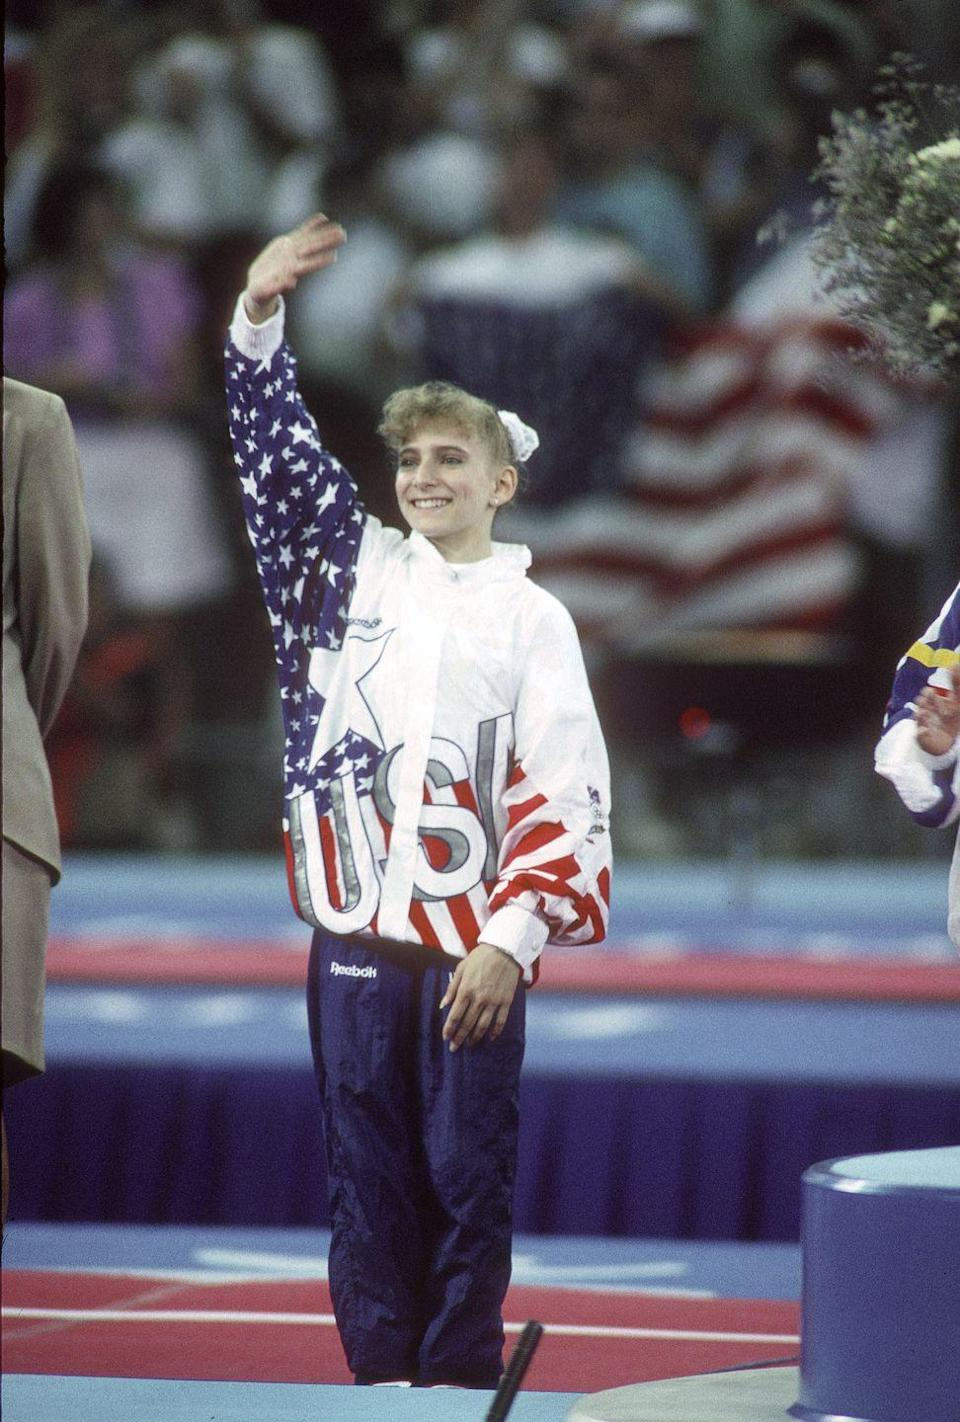 <p>Shannon Miller was an accomplished gymnast before her time on the 1996 Olympic team, known as the Magnificent Seven. Miller made her mark at the 1992 Olympic Games, taking home five medals total, which at the time was the most medals earned by any Olympic athlete in any sport. </p>